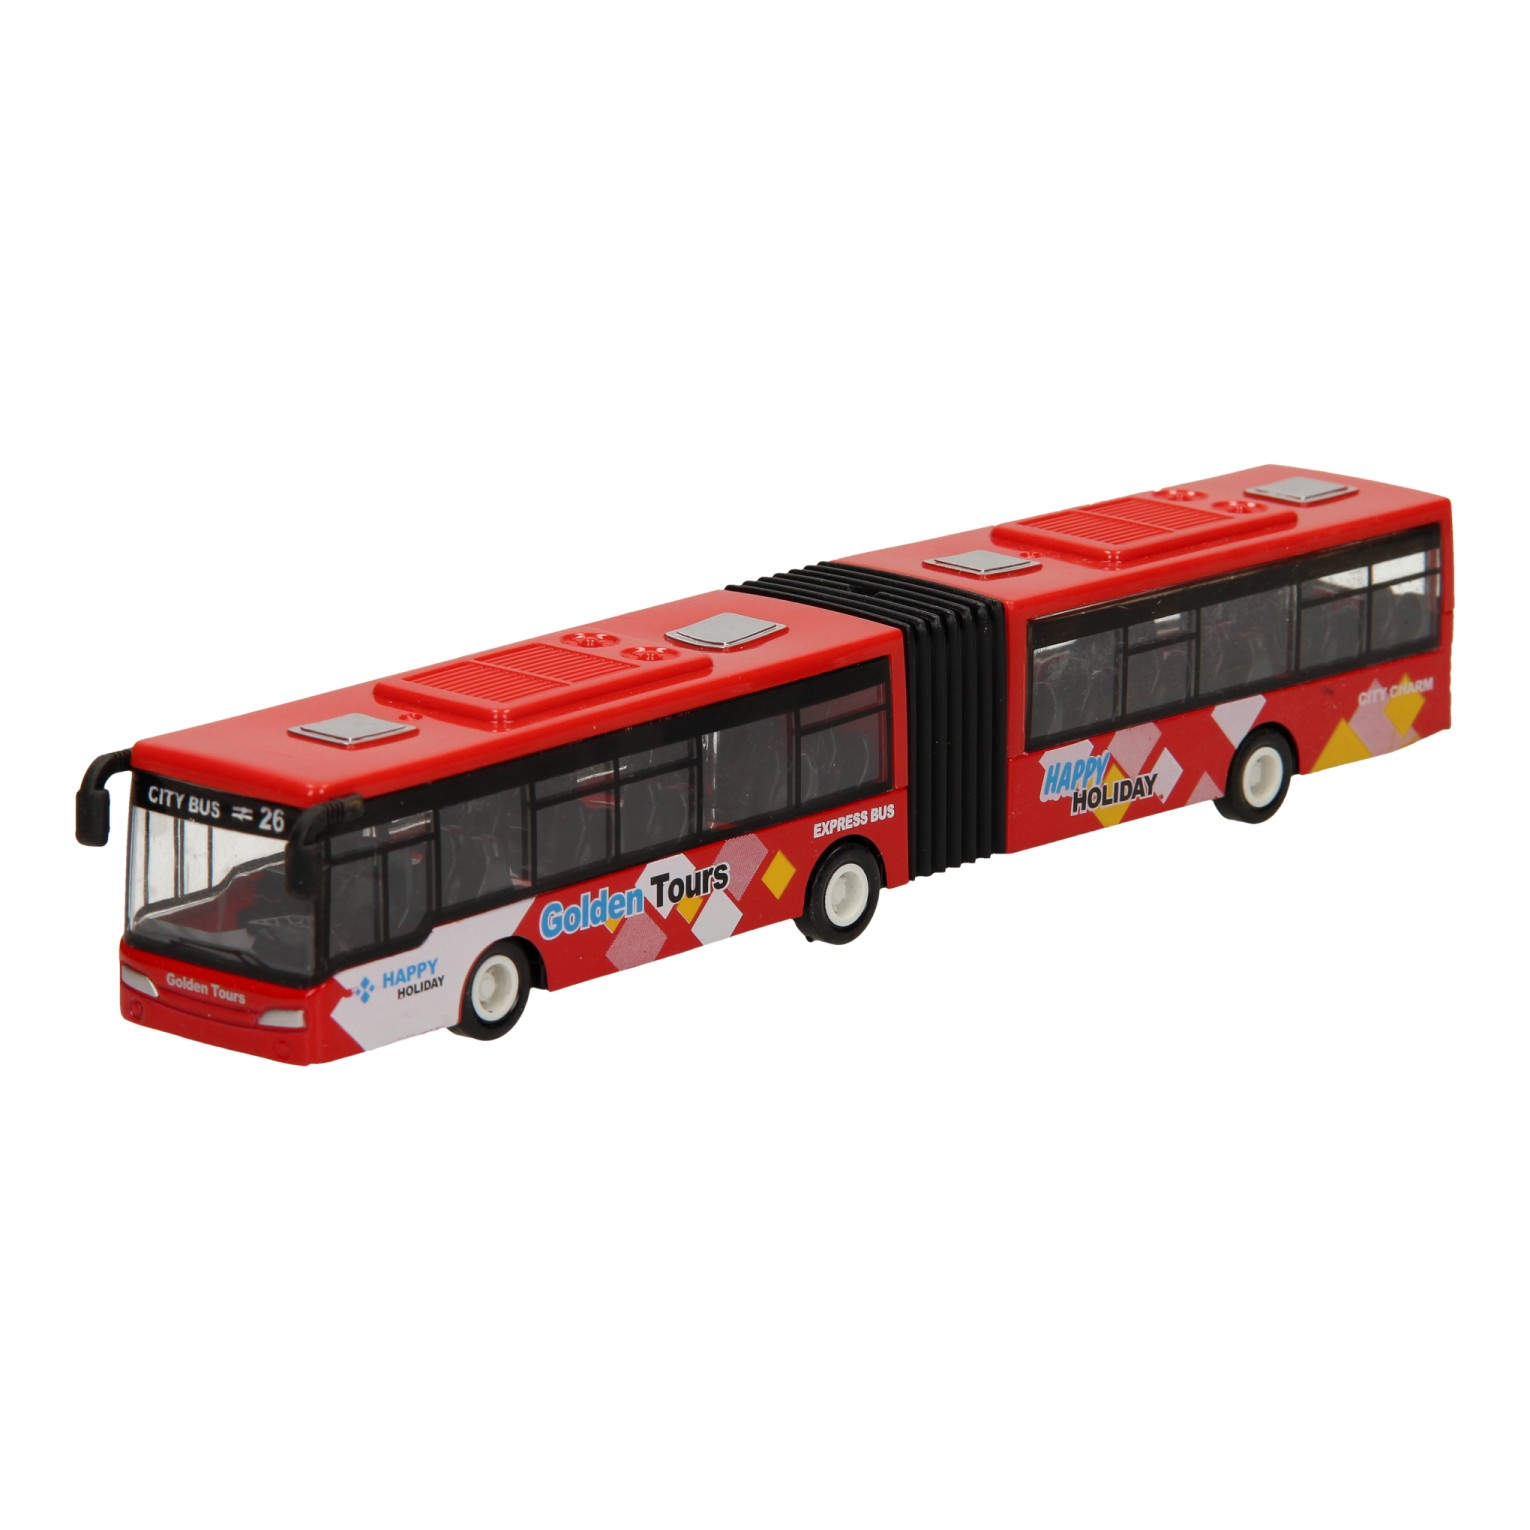 Metalen Trolleybus - Rood